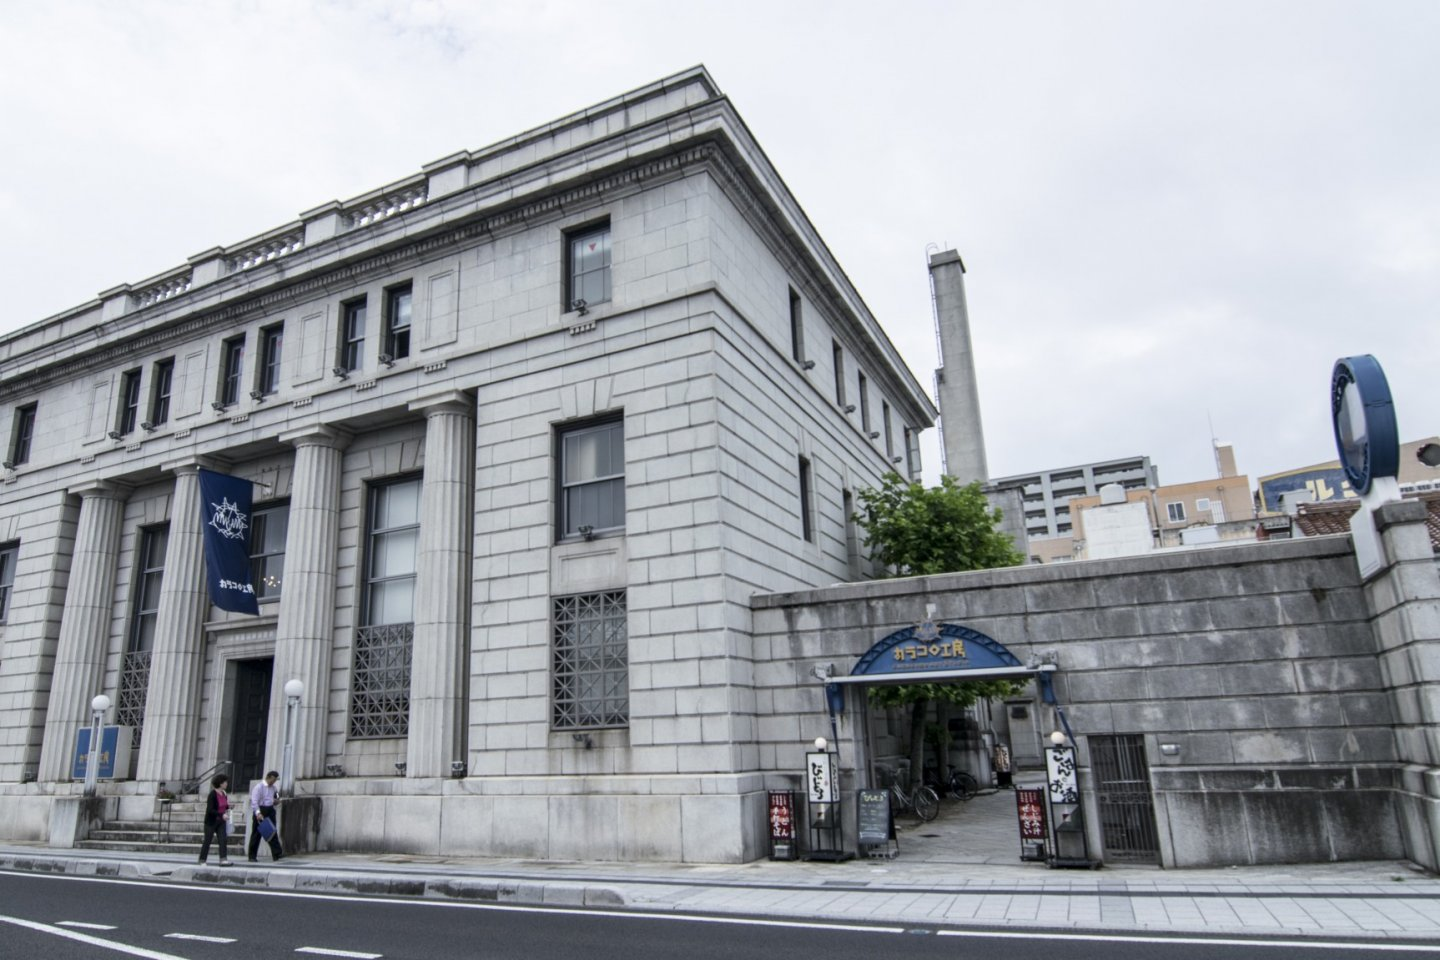 The front facade of Karakoro Art Studio. Using the restored premises of the old Bank of Japan, Karakoro Art Studio stands out with its distinctive European architecture.